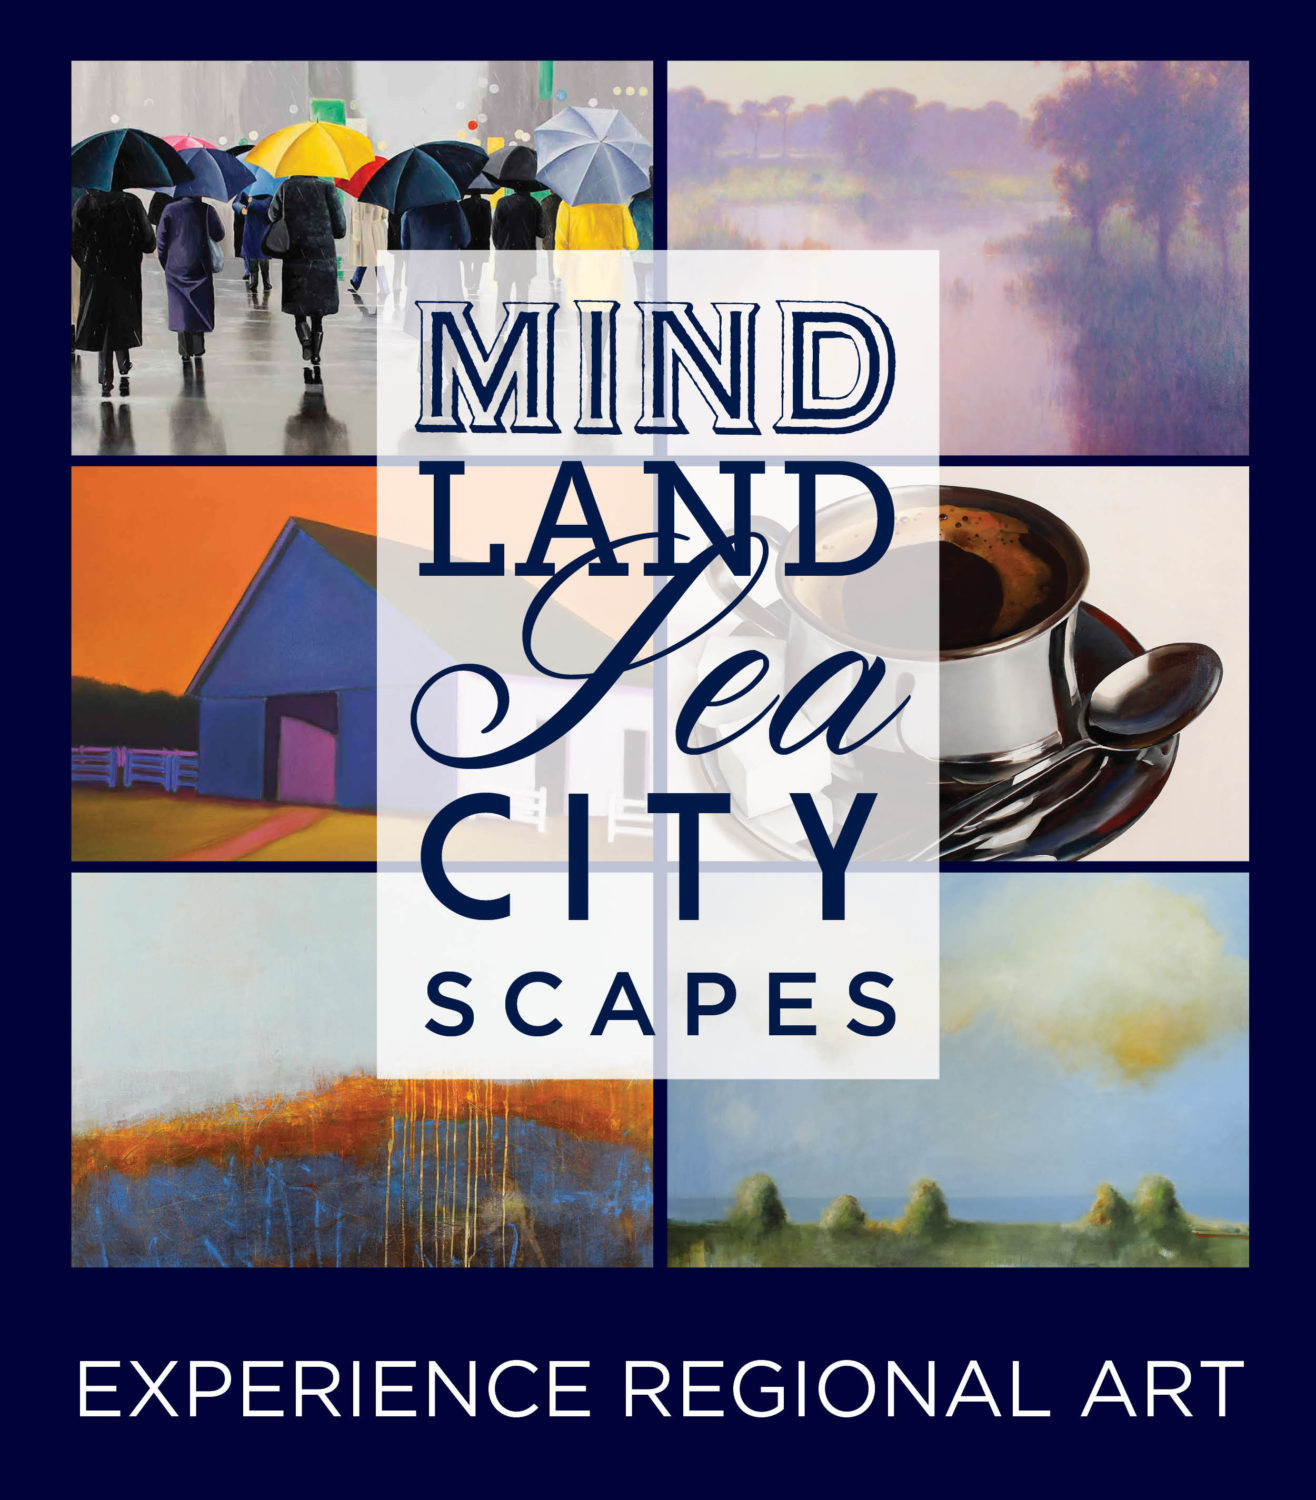 MIND | LAND | SEA | CITY SCAPES